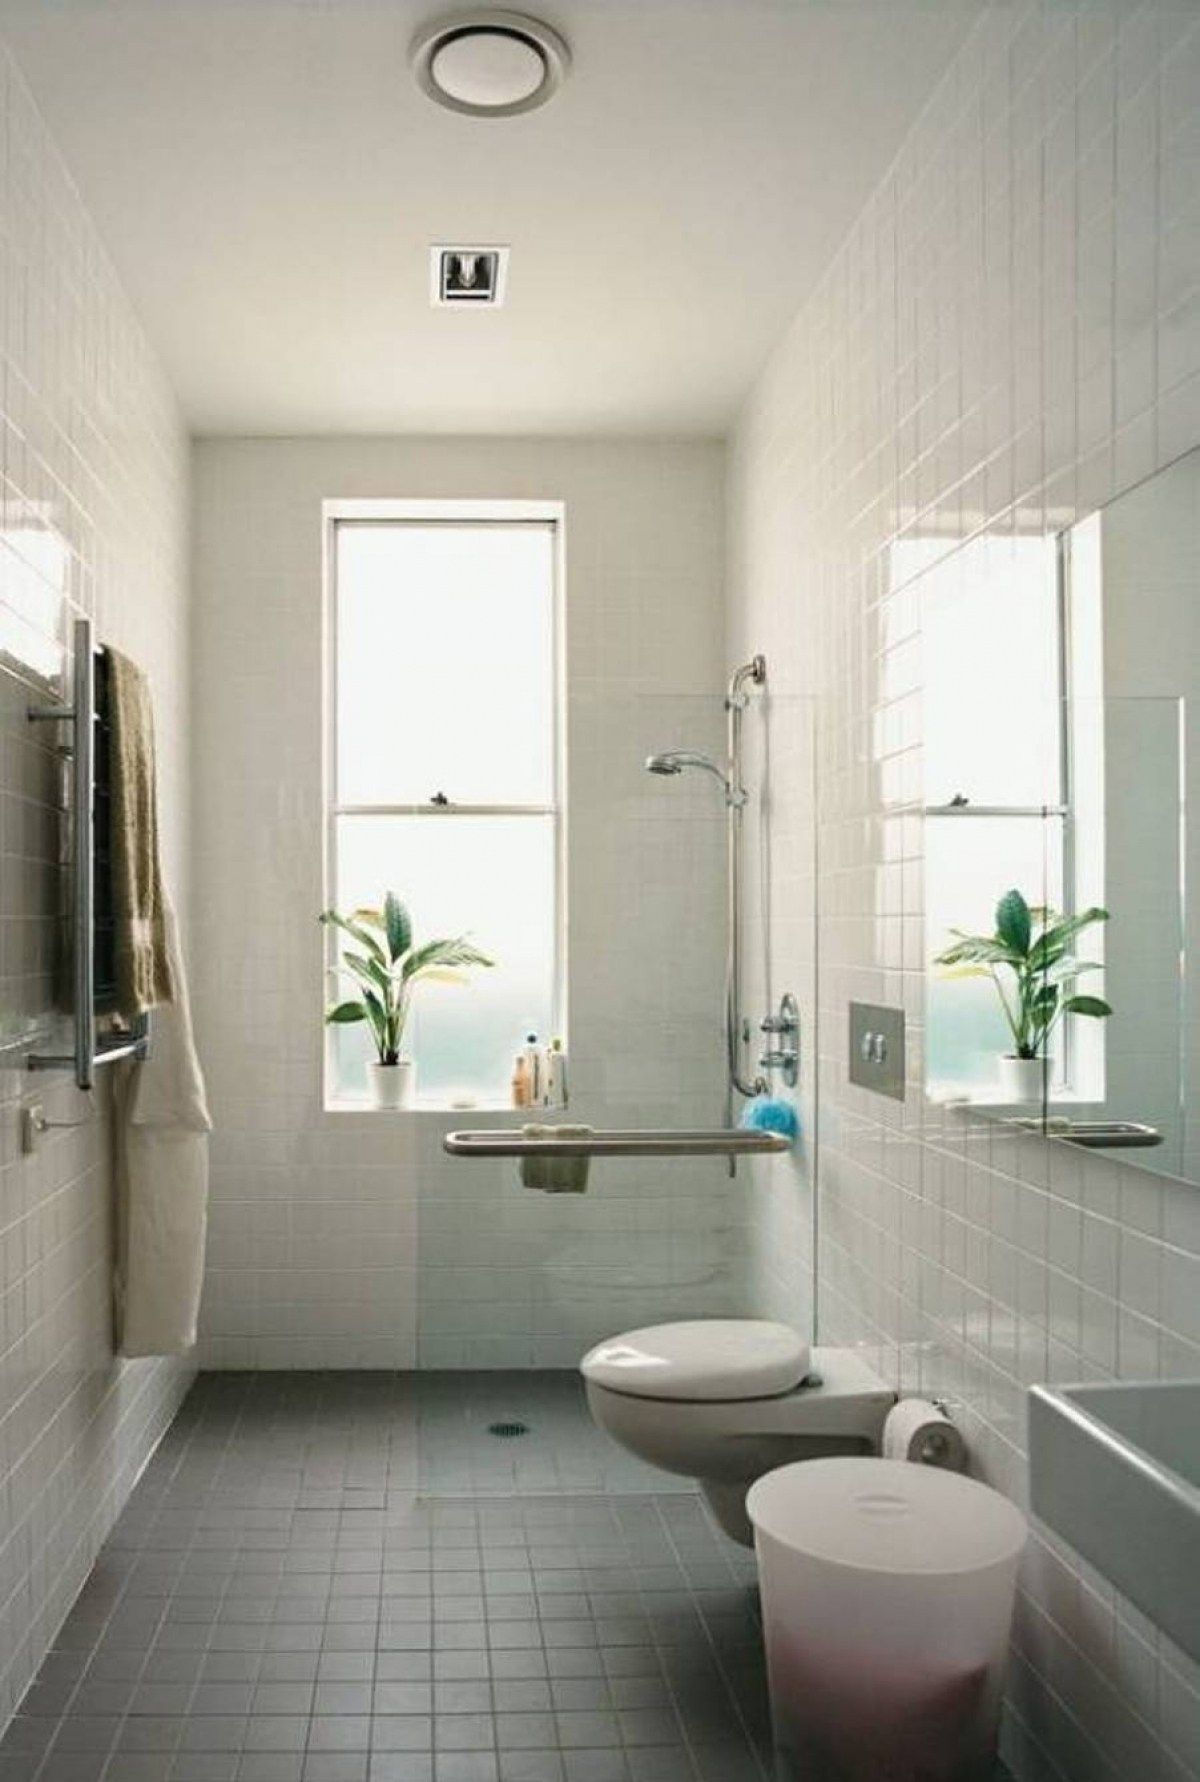 bathroom small narrow bathroom ideas tub shower por ... on narrow shower ideas, family room design ideas, narrow bathroom shelving ideas, narrow bathroom sink ideas, narrow half bath designs, narrow front porch design ideas, narrow bathroom ideas on a budget, small narrow bathroom remodeling ideas, narrow bathroom design plans, long narrow bathroom ideas, washroom design ideas, small bathroom tile ideas, rectangle bathroom decorating ideas, narrow bathroom closet ideas, den design ideas, floor design ideas, small bathroom shower ideas, narrow master bathroom design, small bathroom decorating ideas,